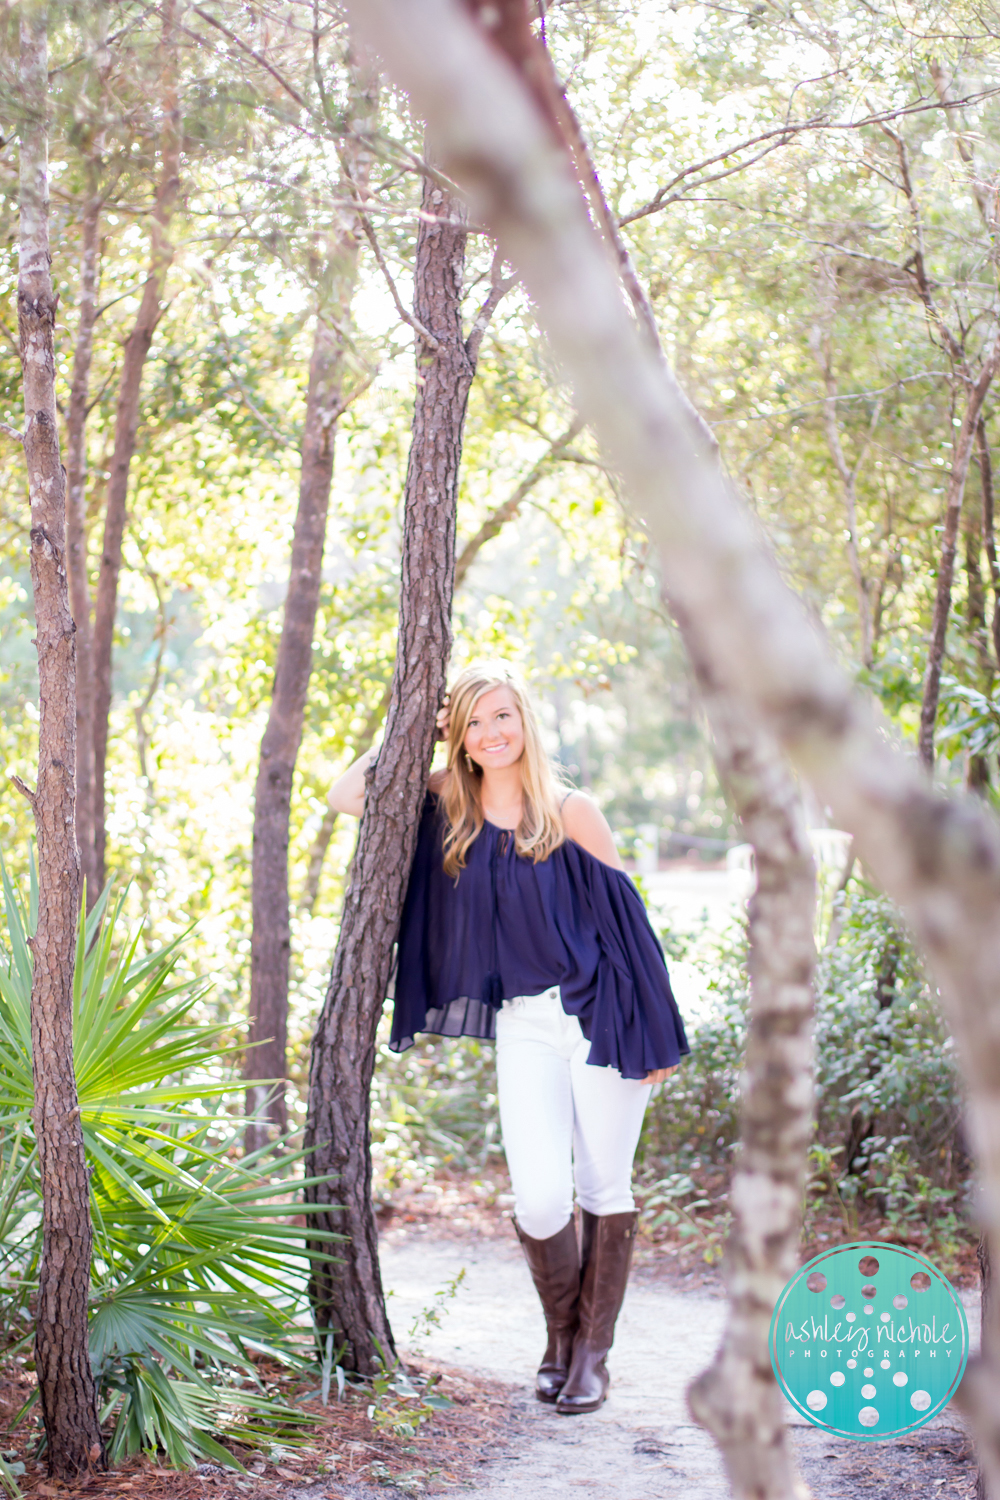 Ashley Nichole Photography- Seniors-22.jpg